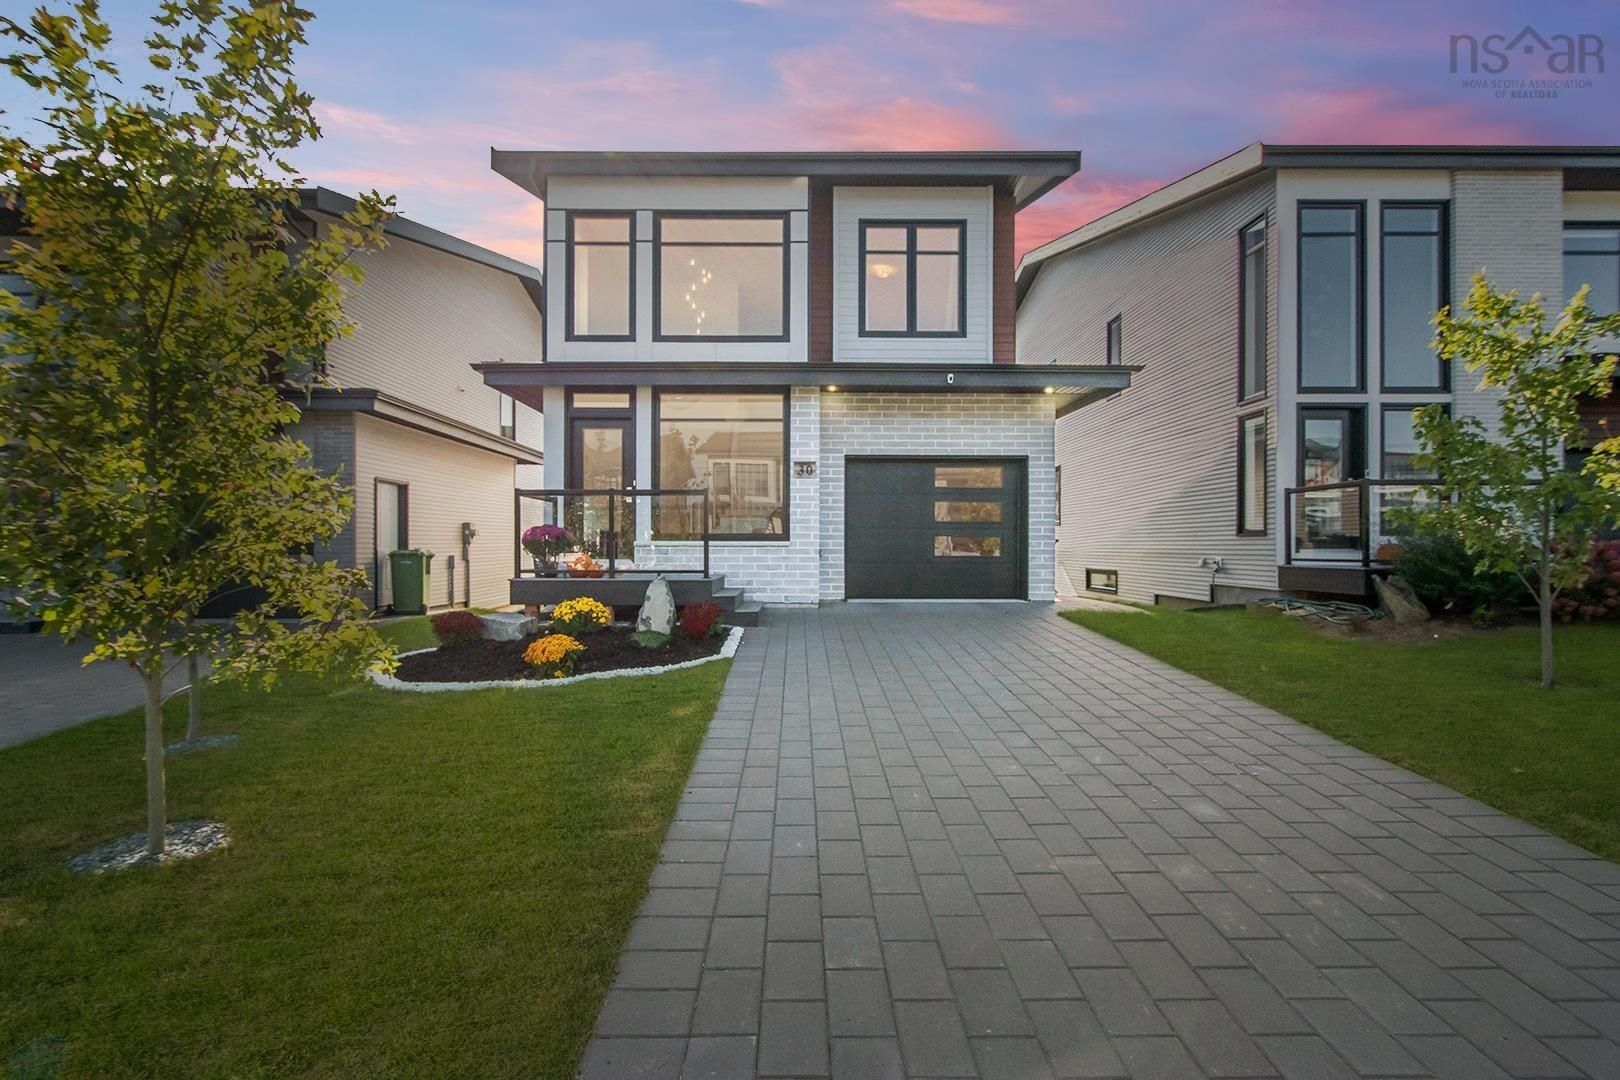 Main Photo: Lot 07 30 Serotina Lane in West Bedford: 20-Bedford Residential for sale (Halifax-Dartmouth)  : MLS®# 202125820